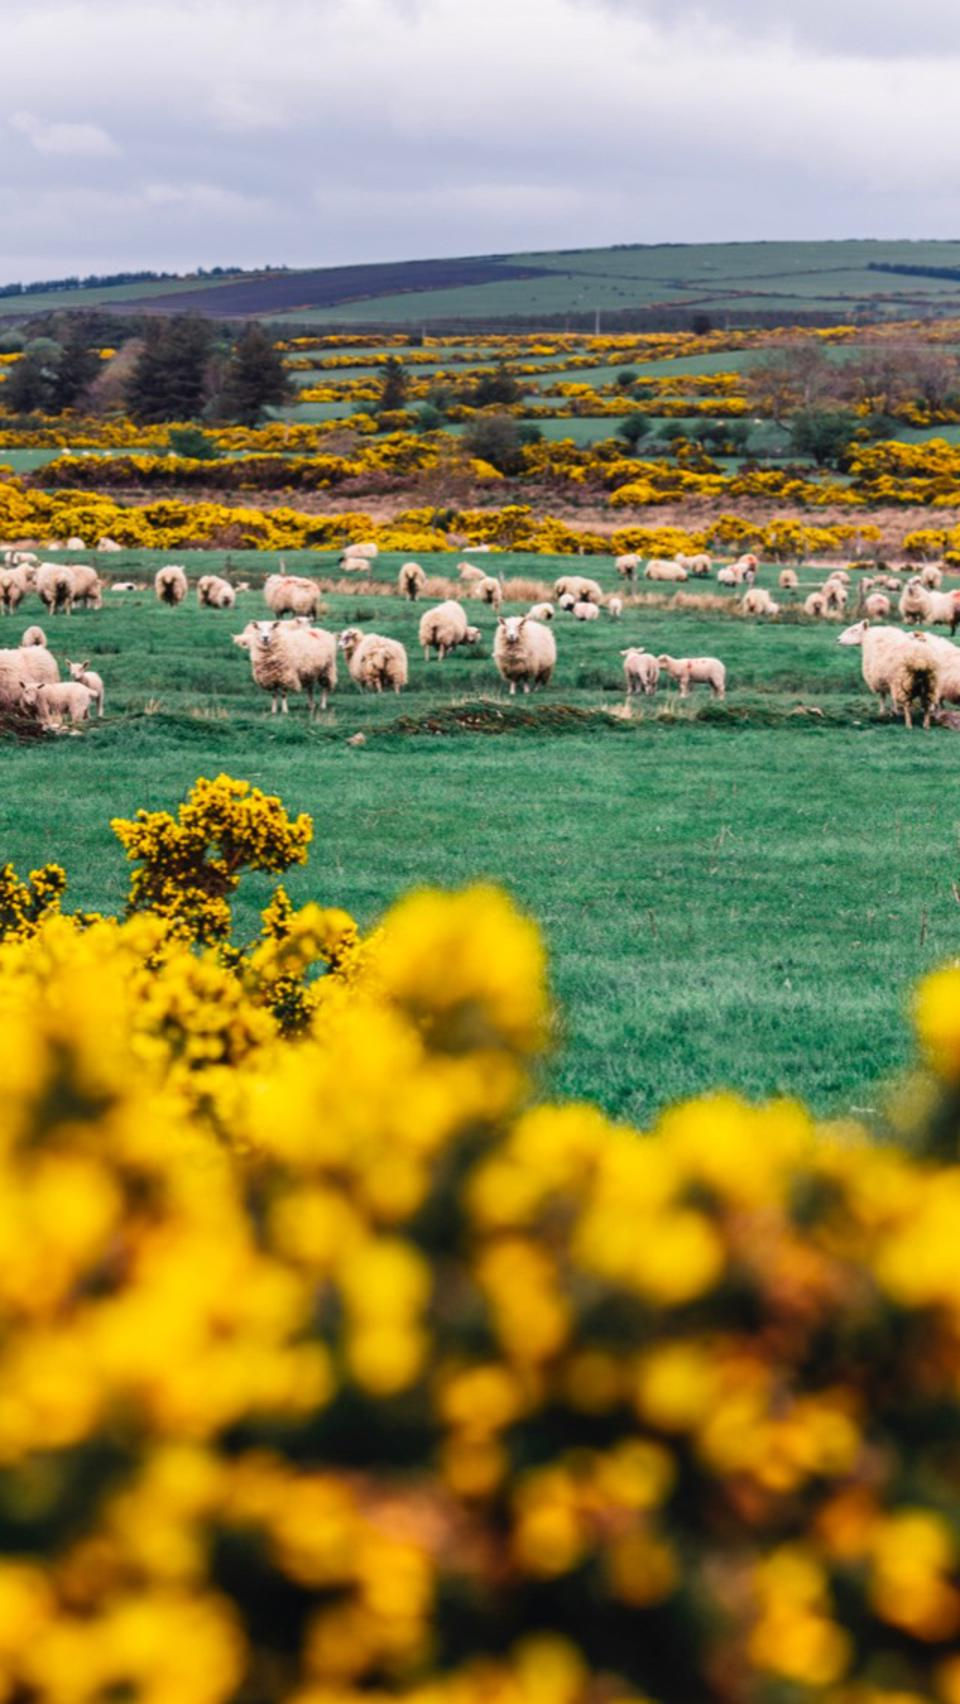 Sheep  in  meadow in Ireland with bright yellow flowers and green grass